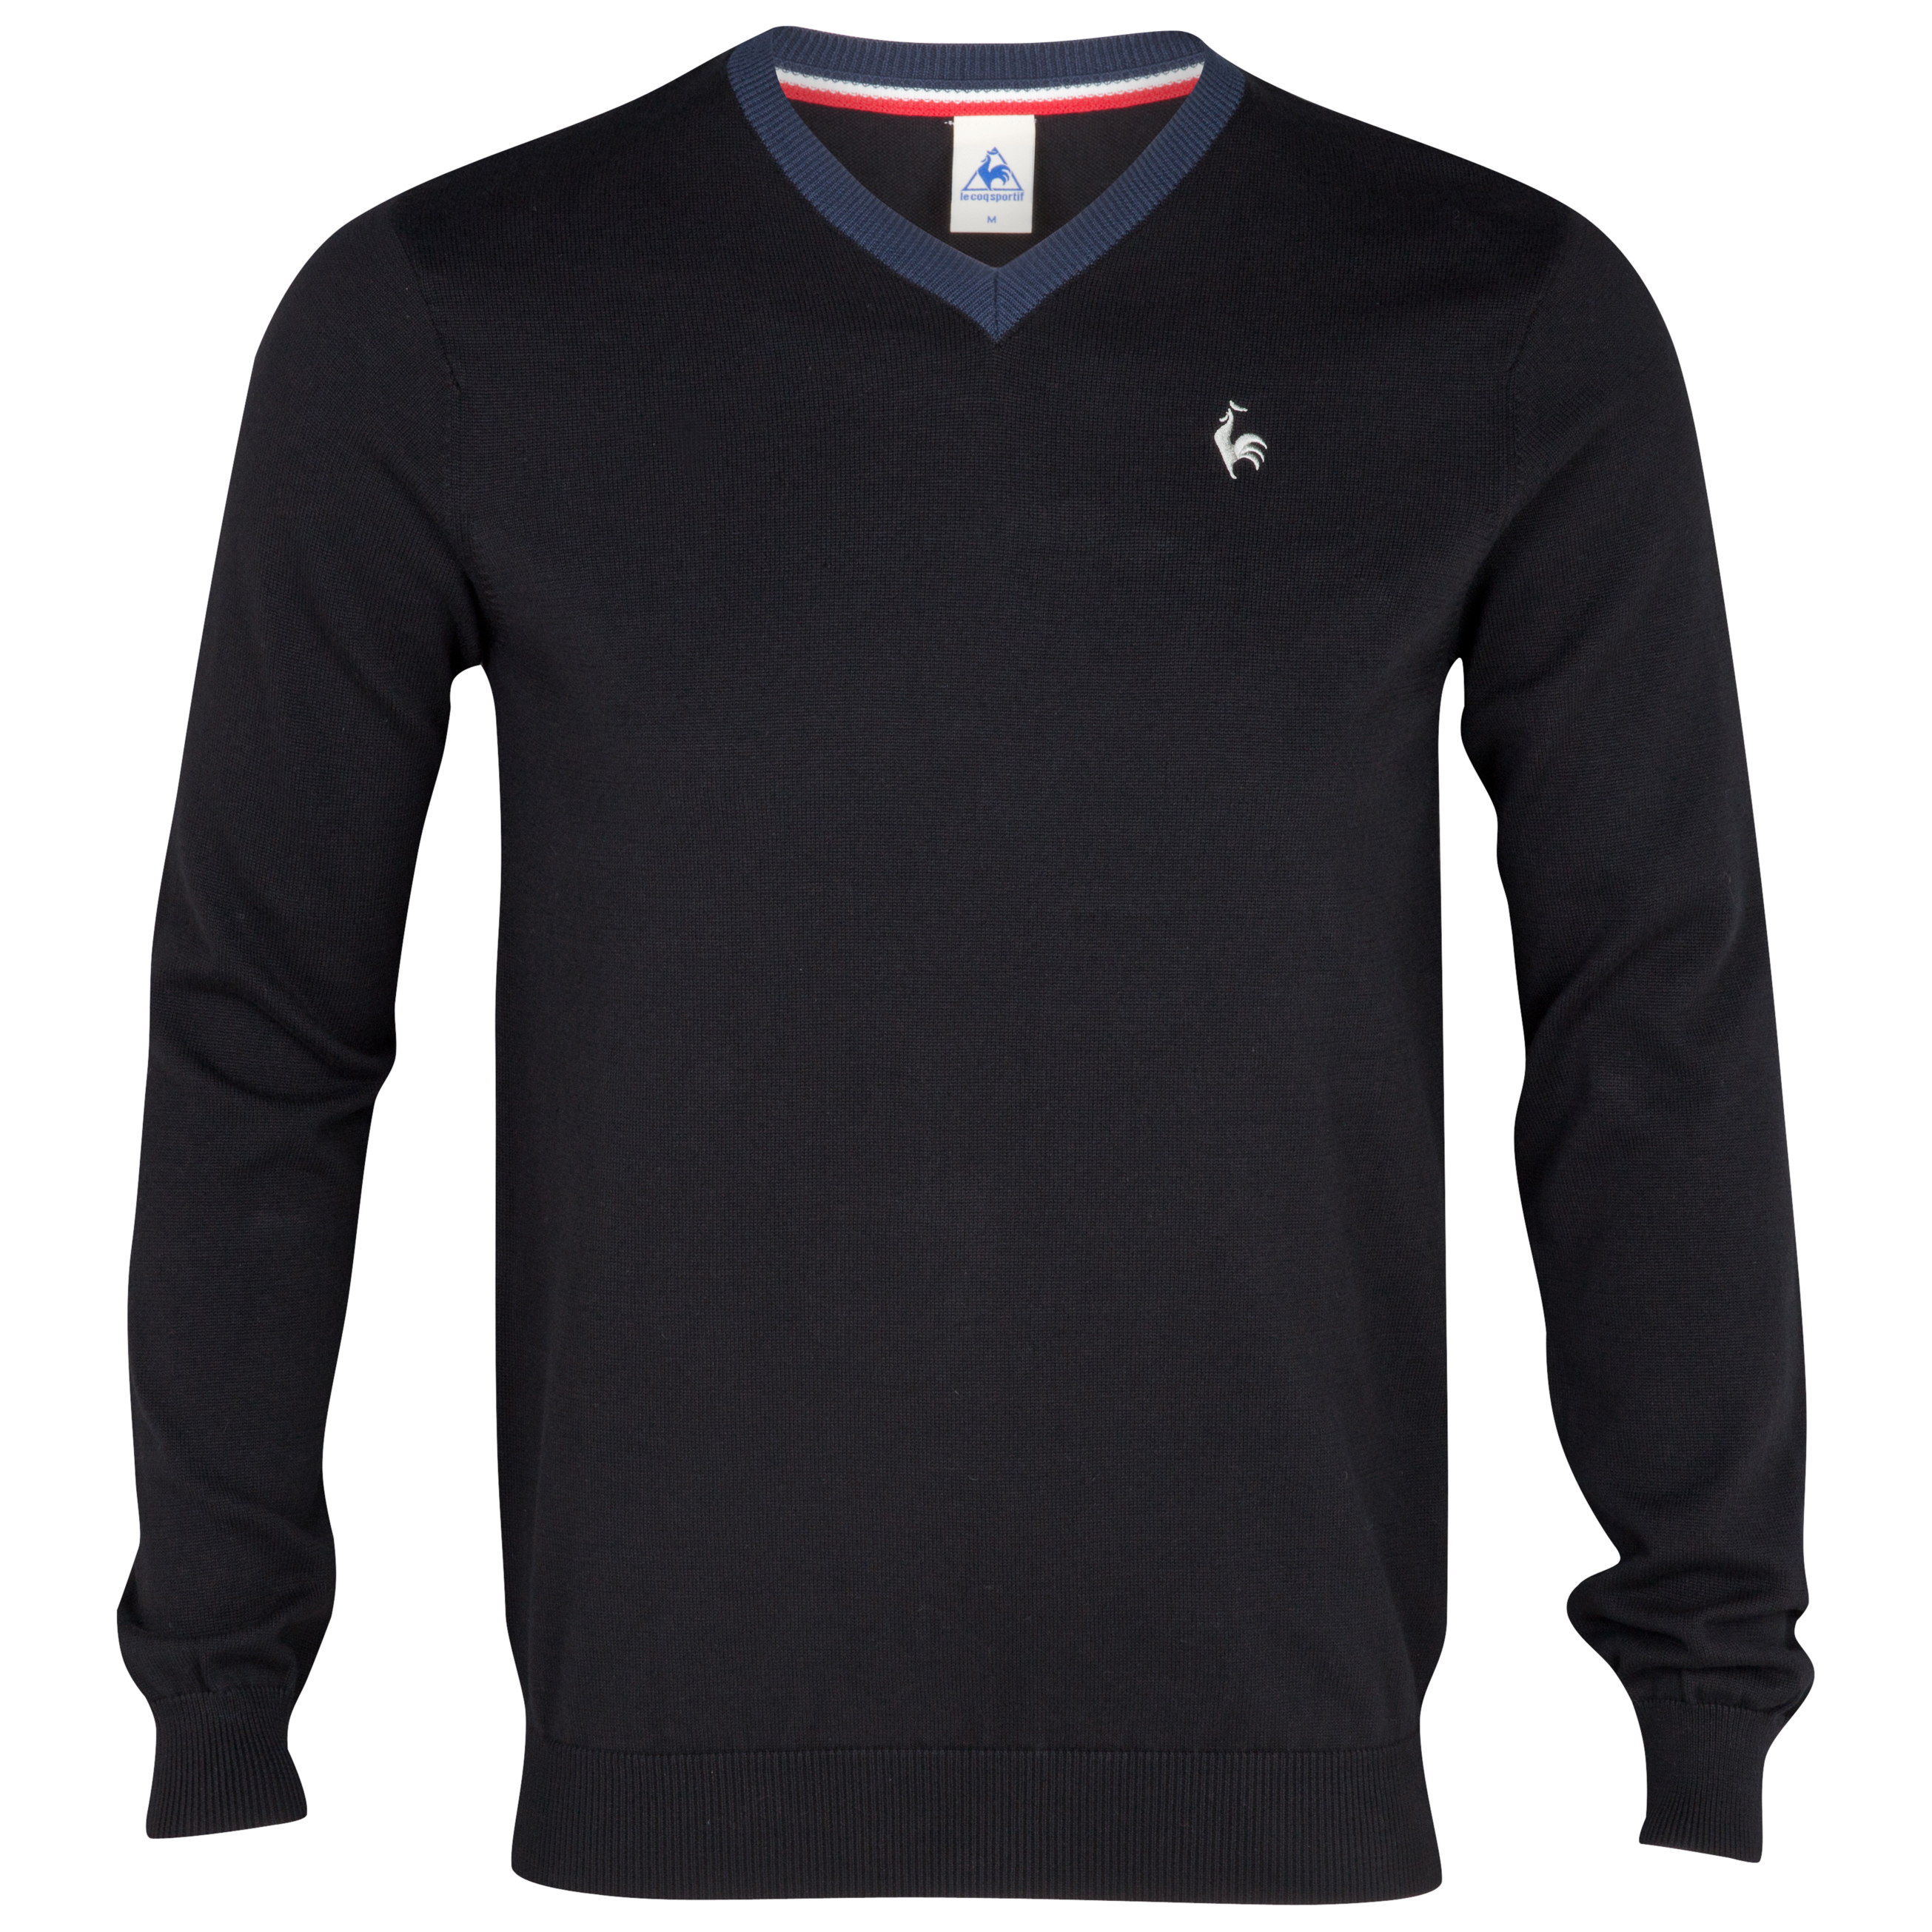 Le Coq Sportif Pull Over Knit - Black